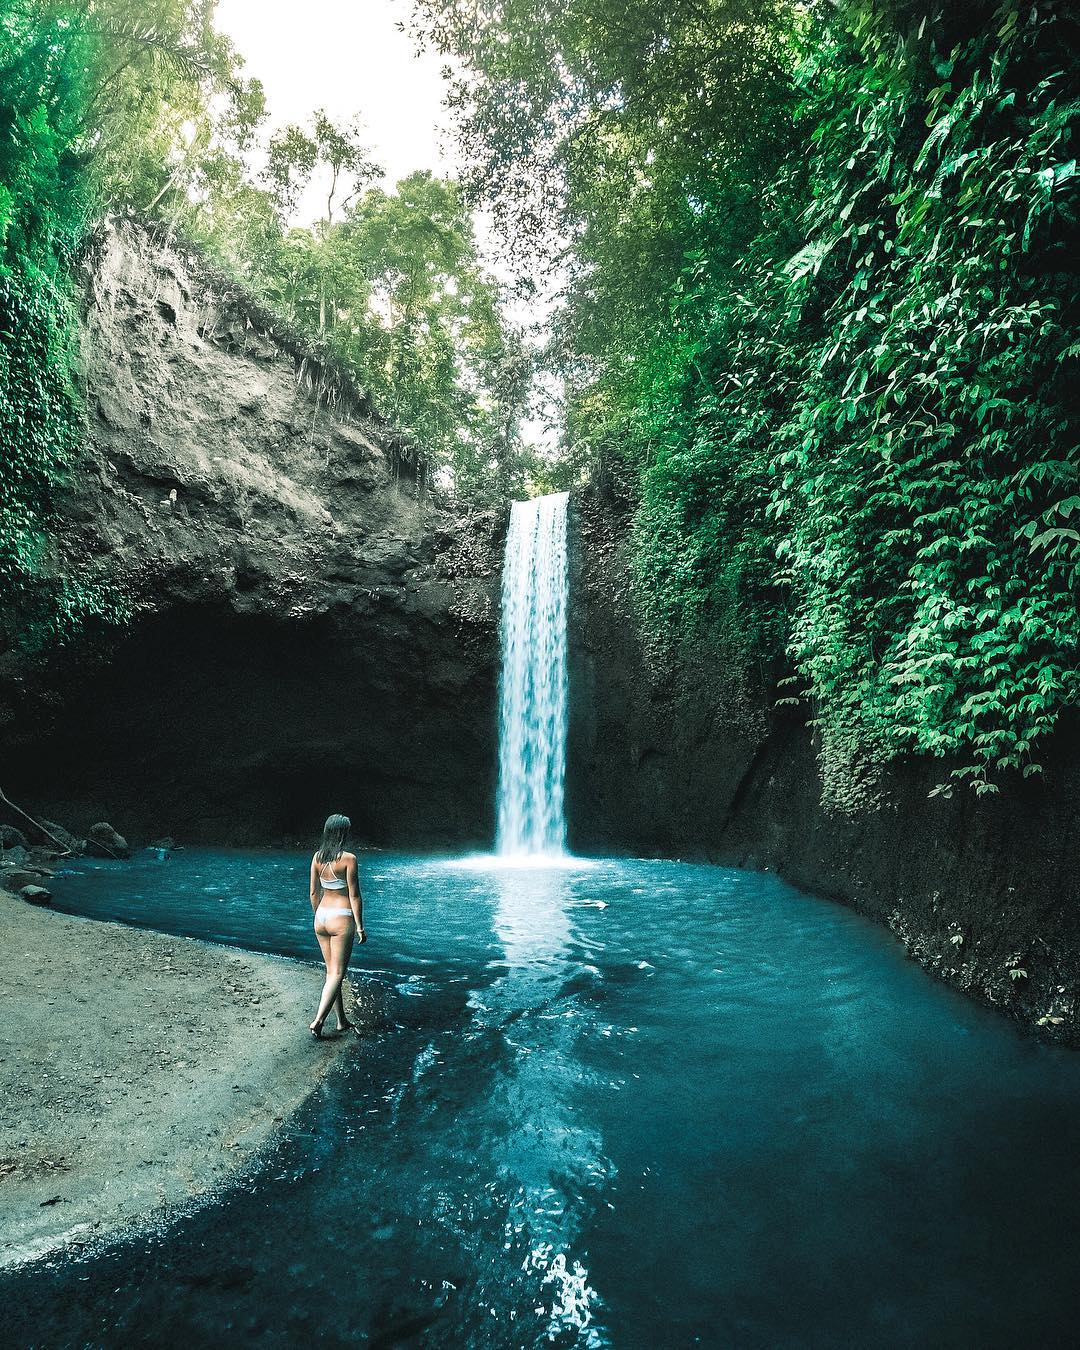 Tibumana Waterfall Bali is a twin waterfall with 2 adjoining streams. But when the river water above it is small, there is only one large stream that drops into a waterfall. via  @jackobhere